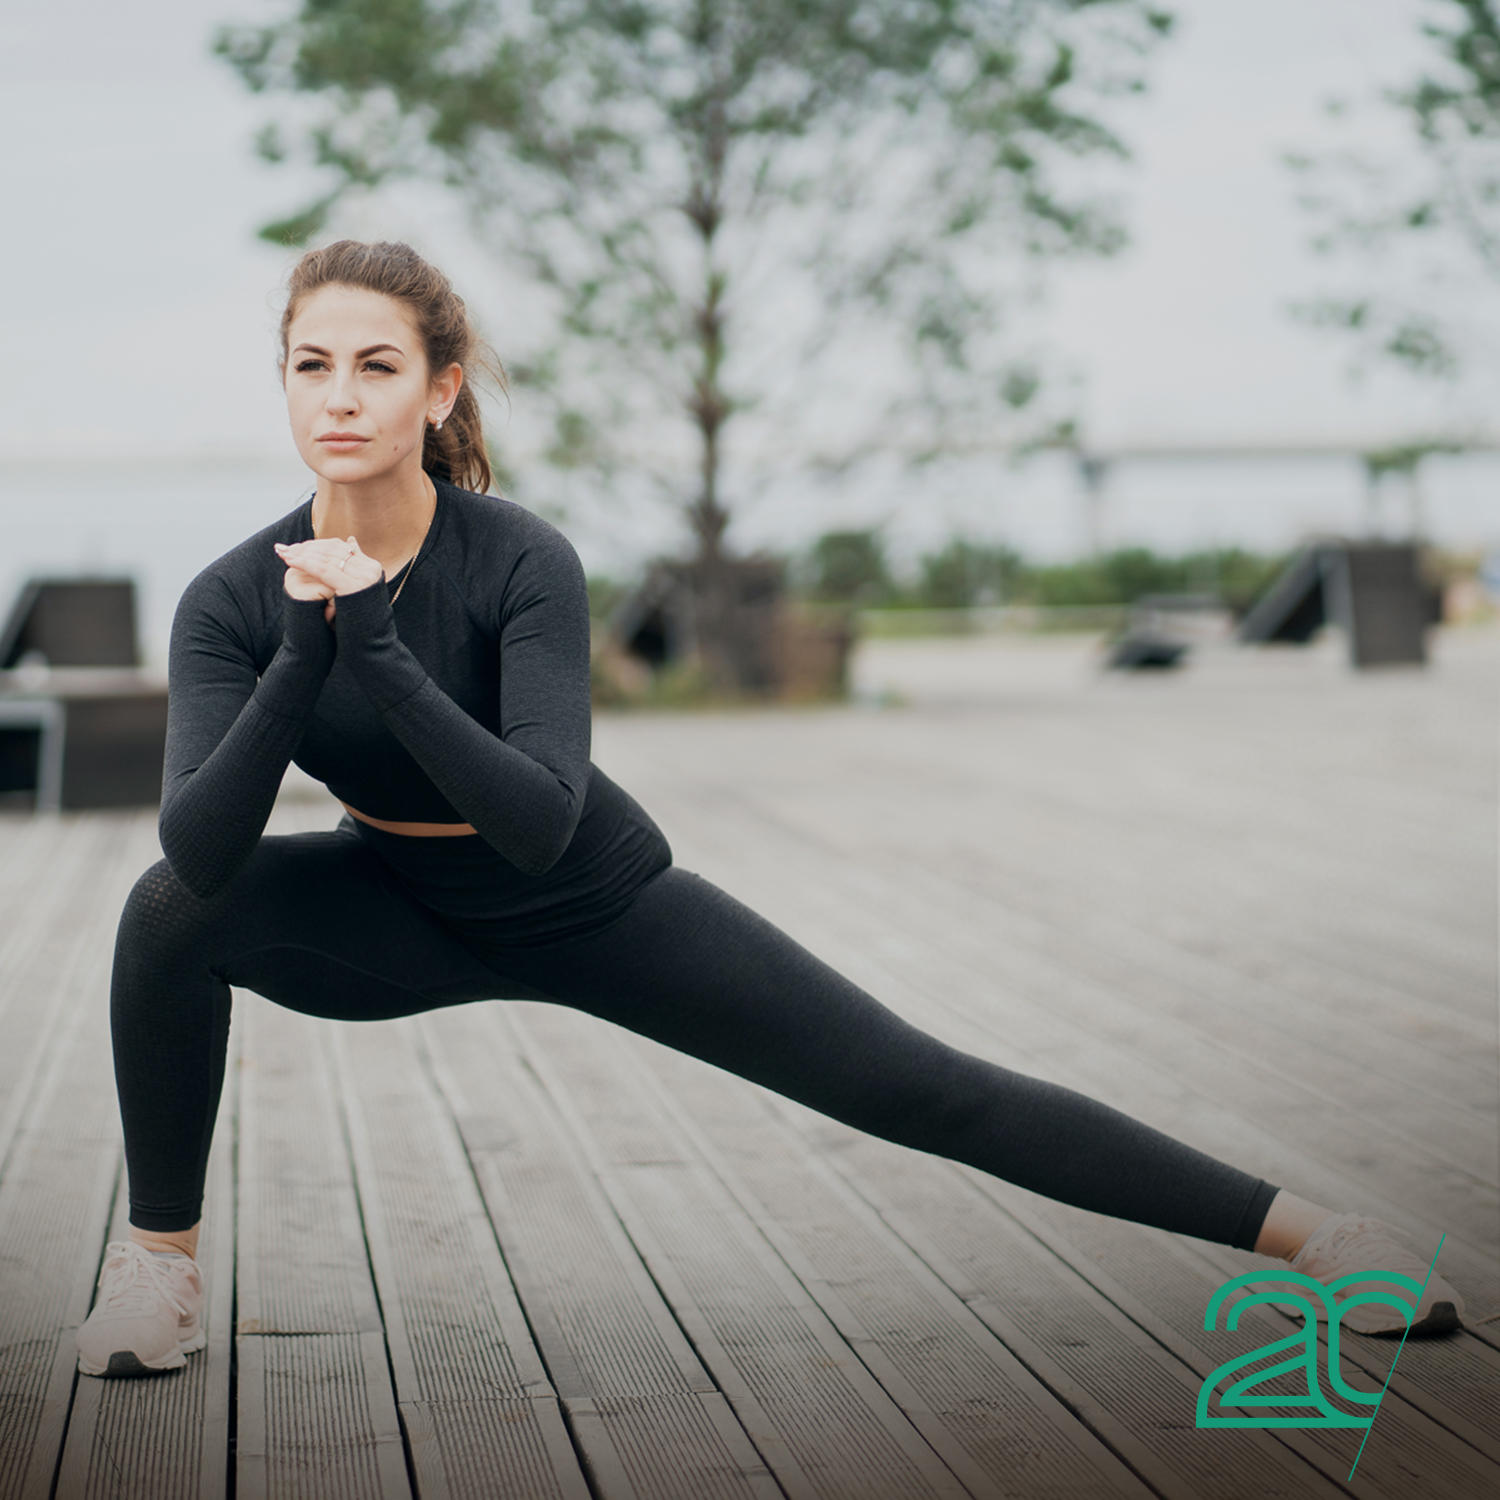 Woman Sretching During Outdoor Workout